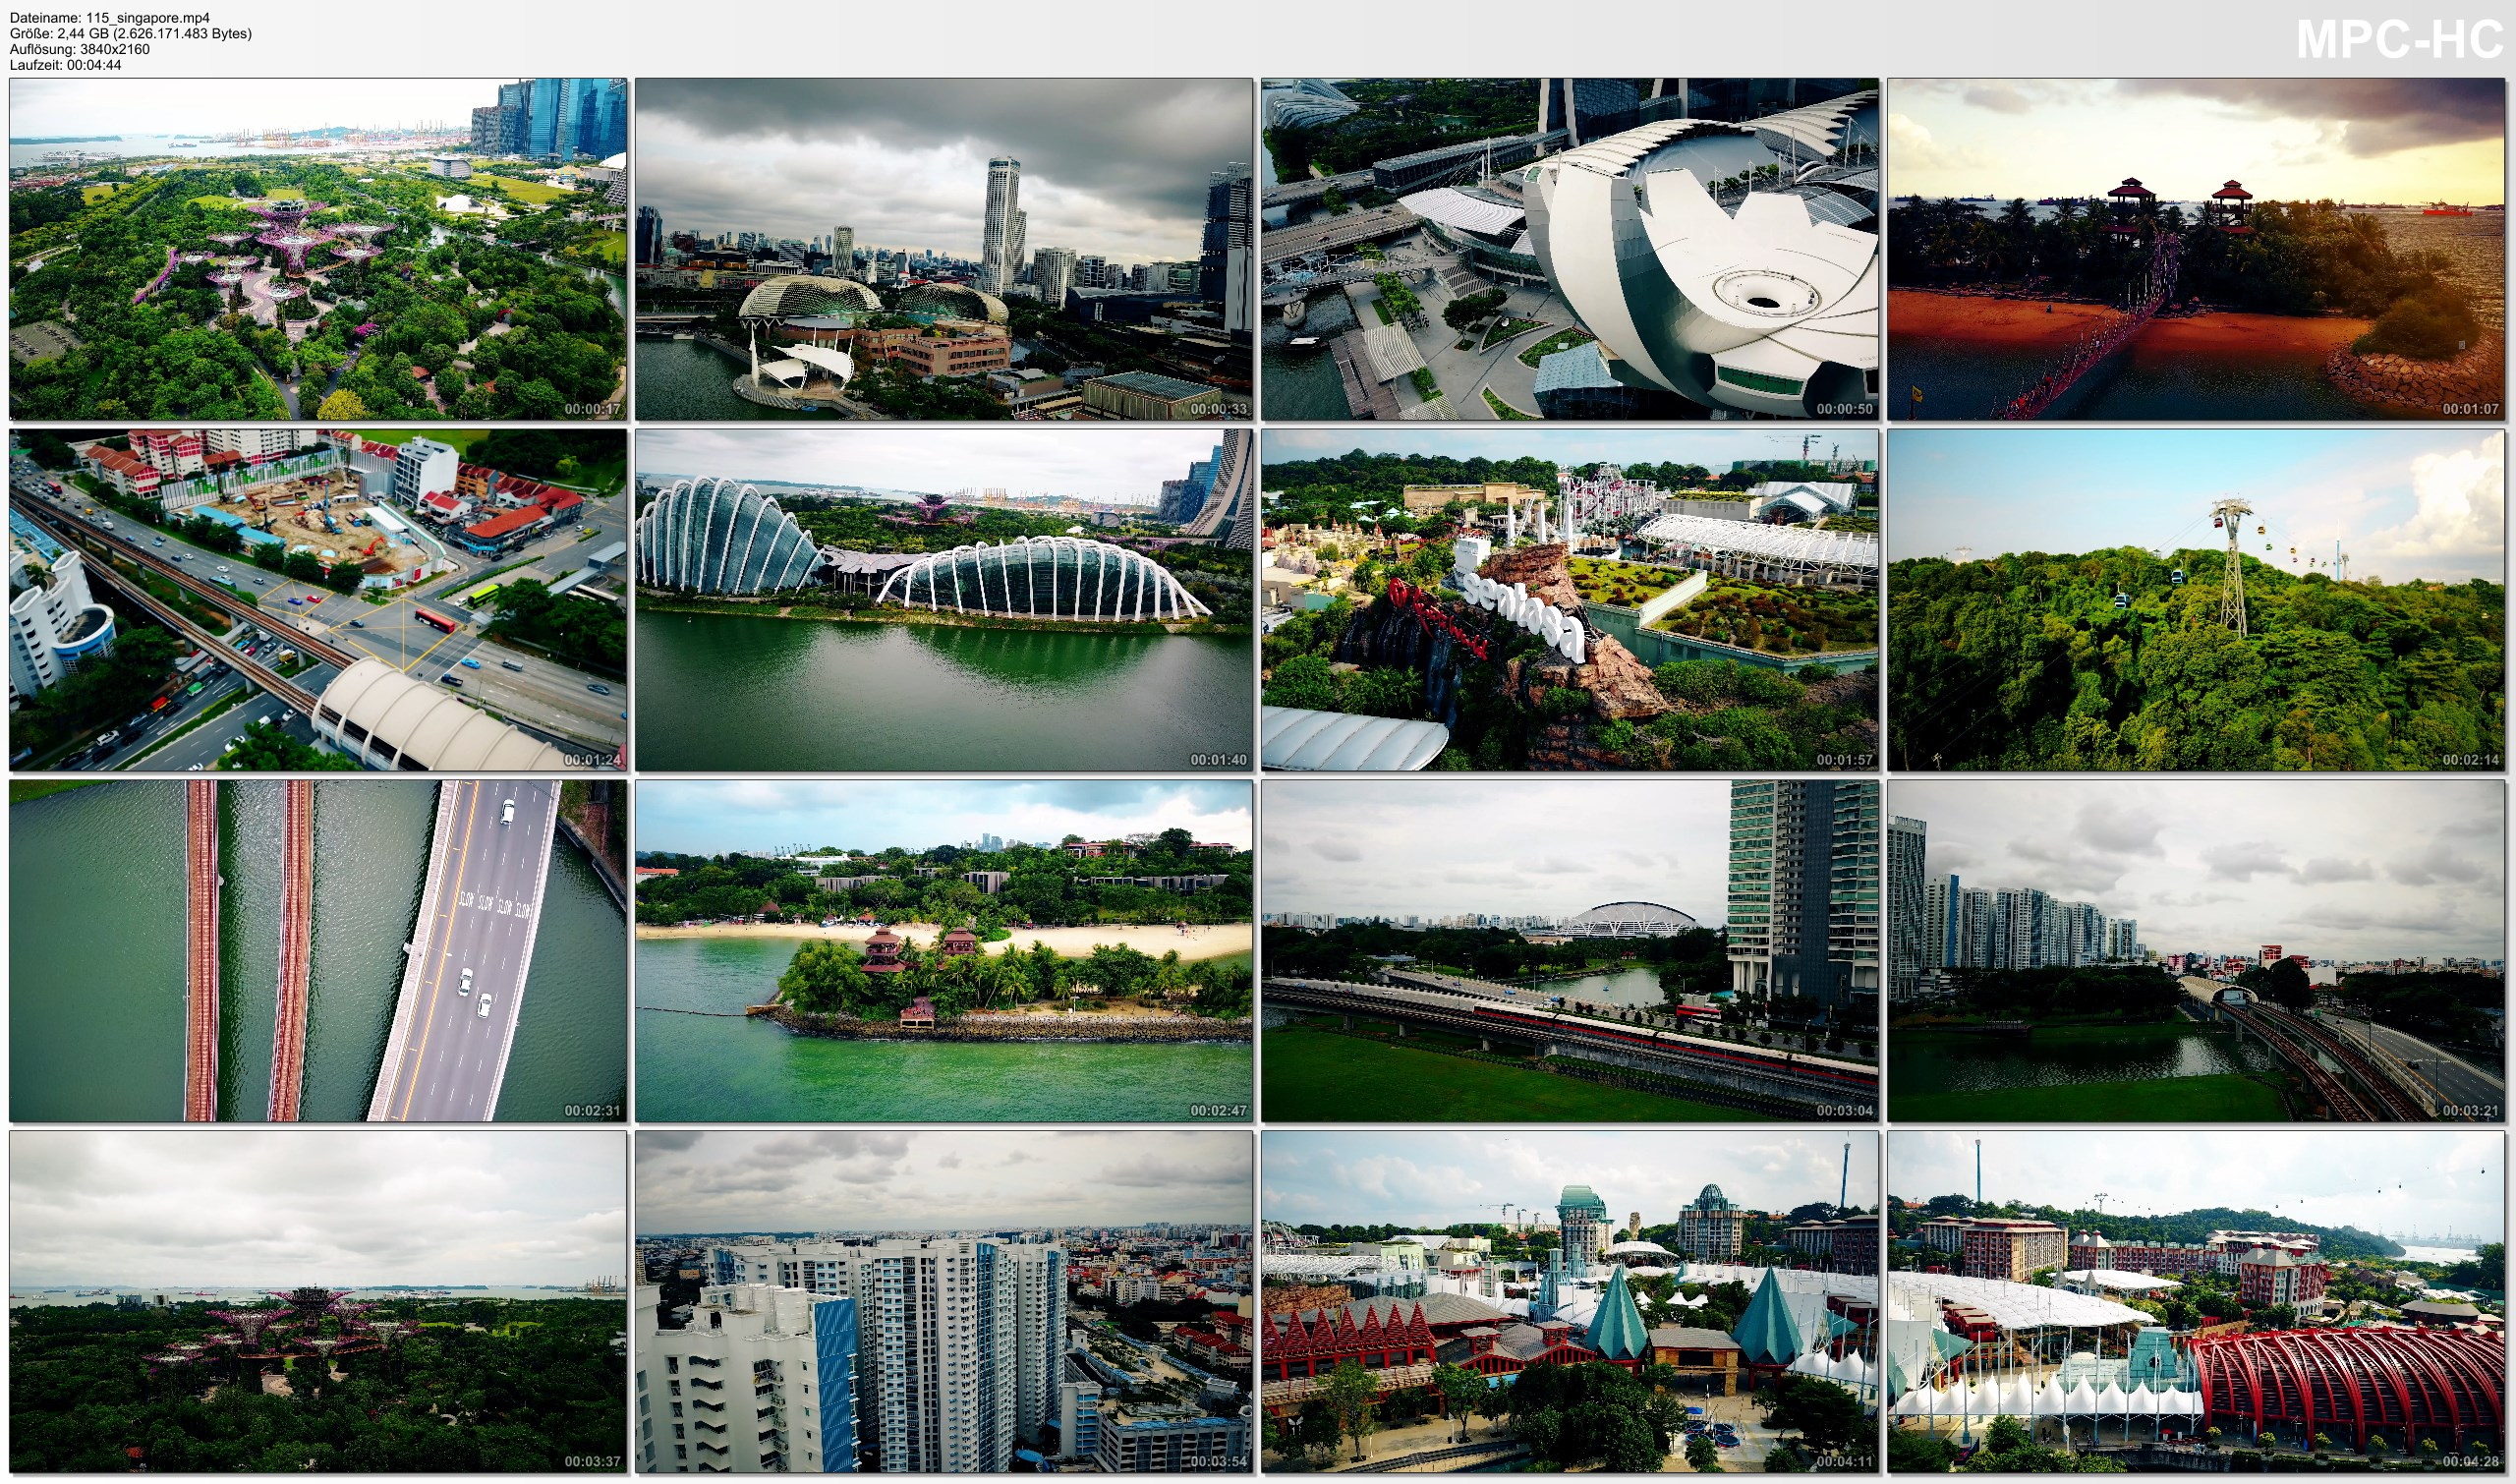 Drone Pictures from Video 【4K】Drone Footage | SINGAPORE 2019 ..:: The Lion City as you have NEVER SEEN BEFORE